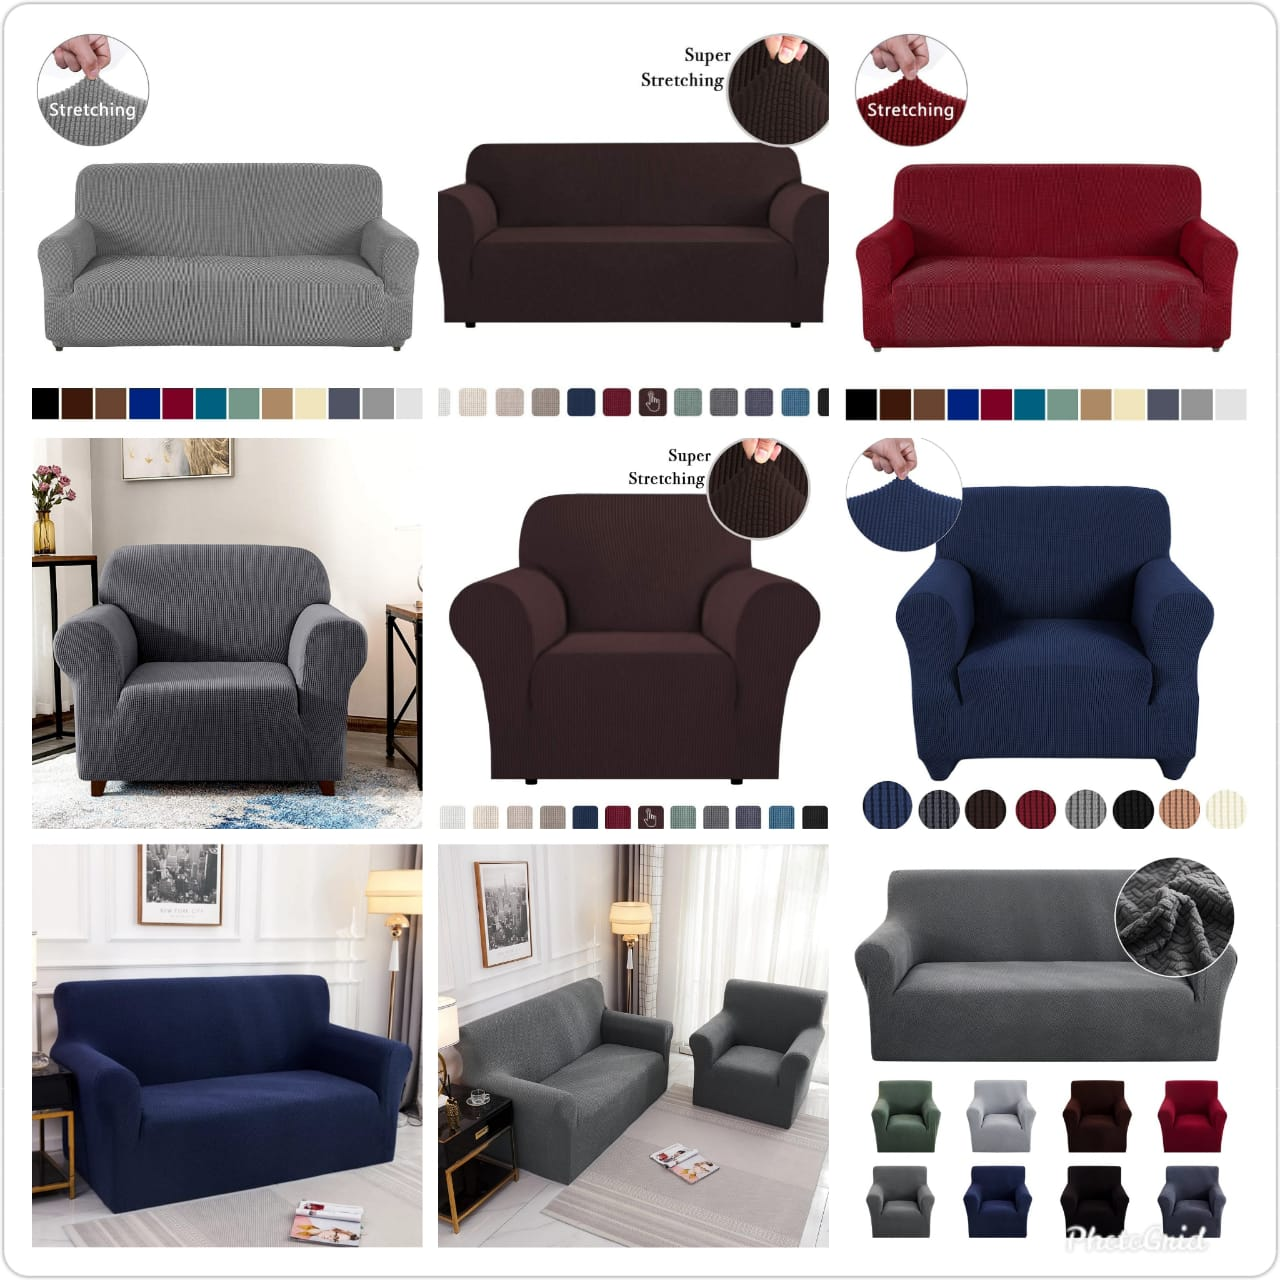 Luxurious Seat Covers(3:2)5 Seater